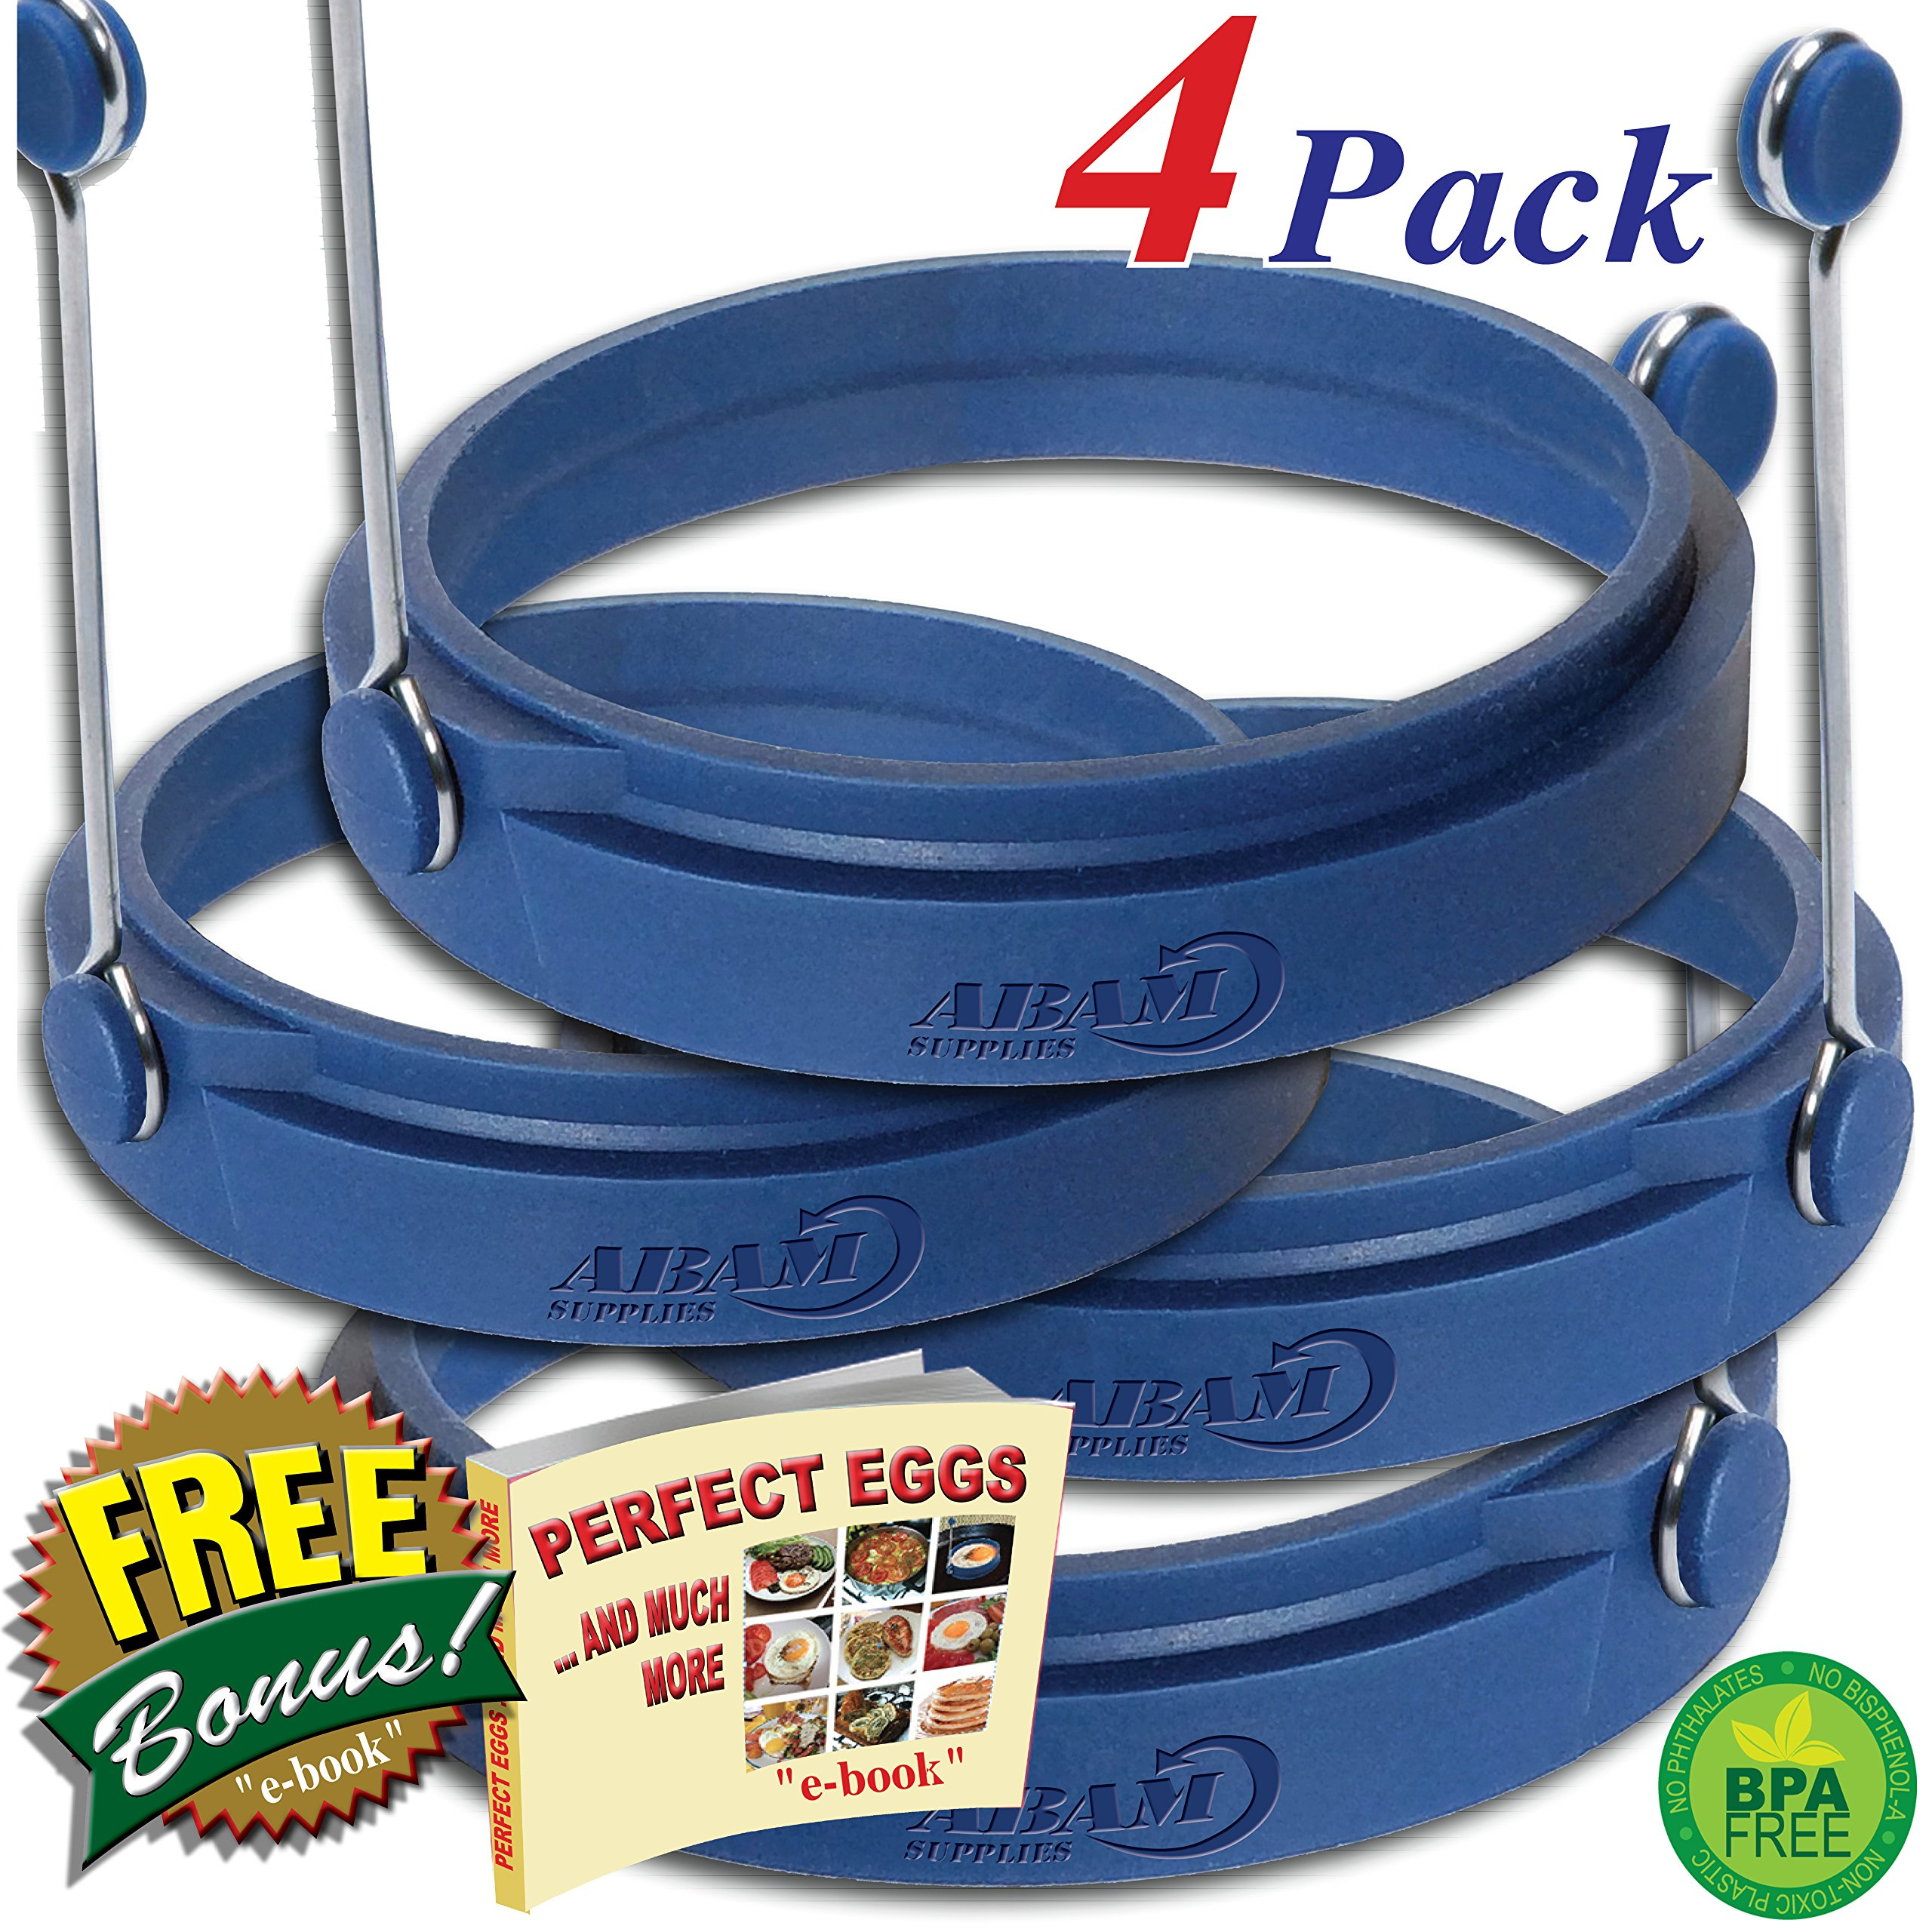 PROFESSIONAL Silicone Egg Ring- Pancake Breakfast Sandwiches - Benedict Eggs - Omelets and More Nonstick Mold Ring Round, Blue (4-pack)